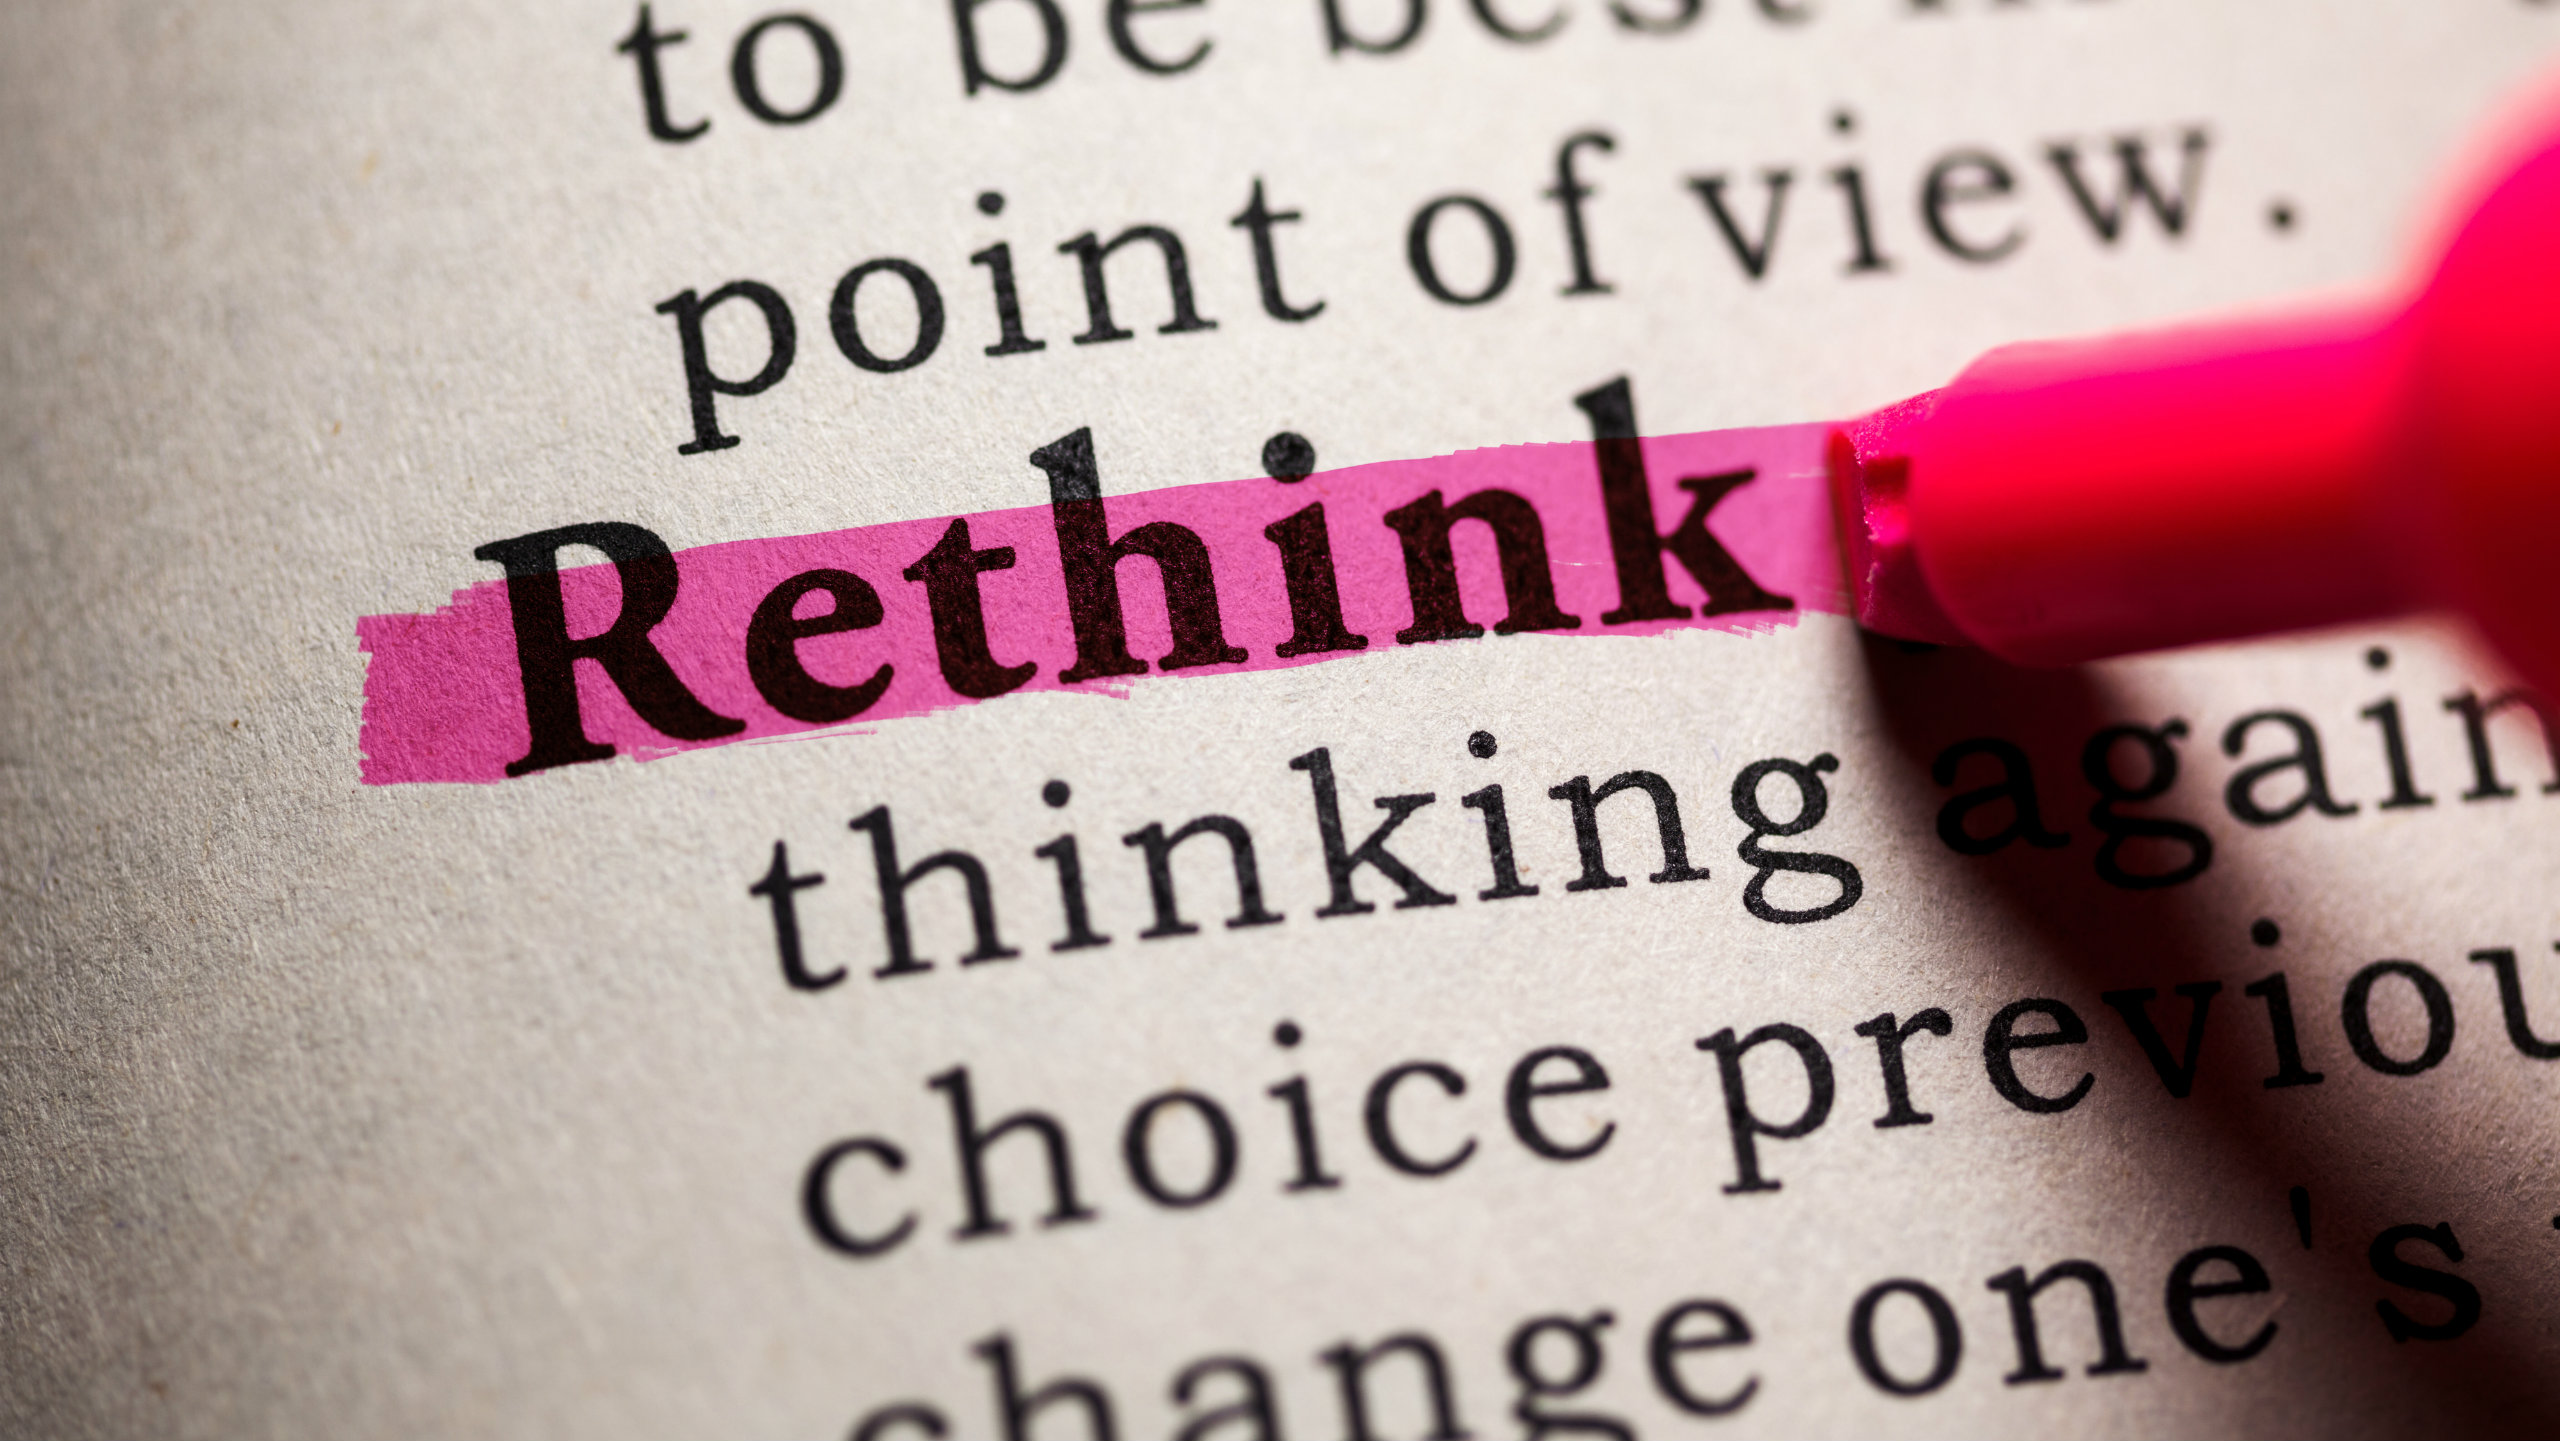 Rethink highlighted in a dictionary